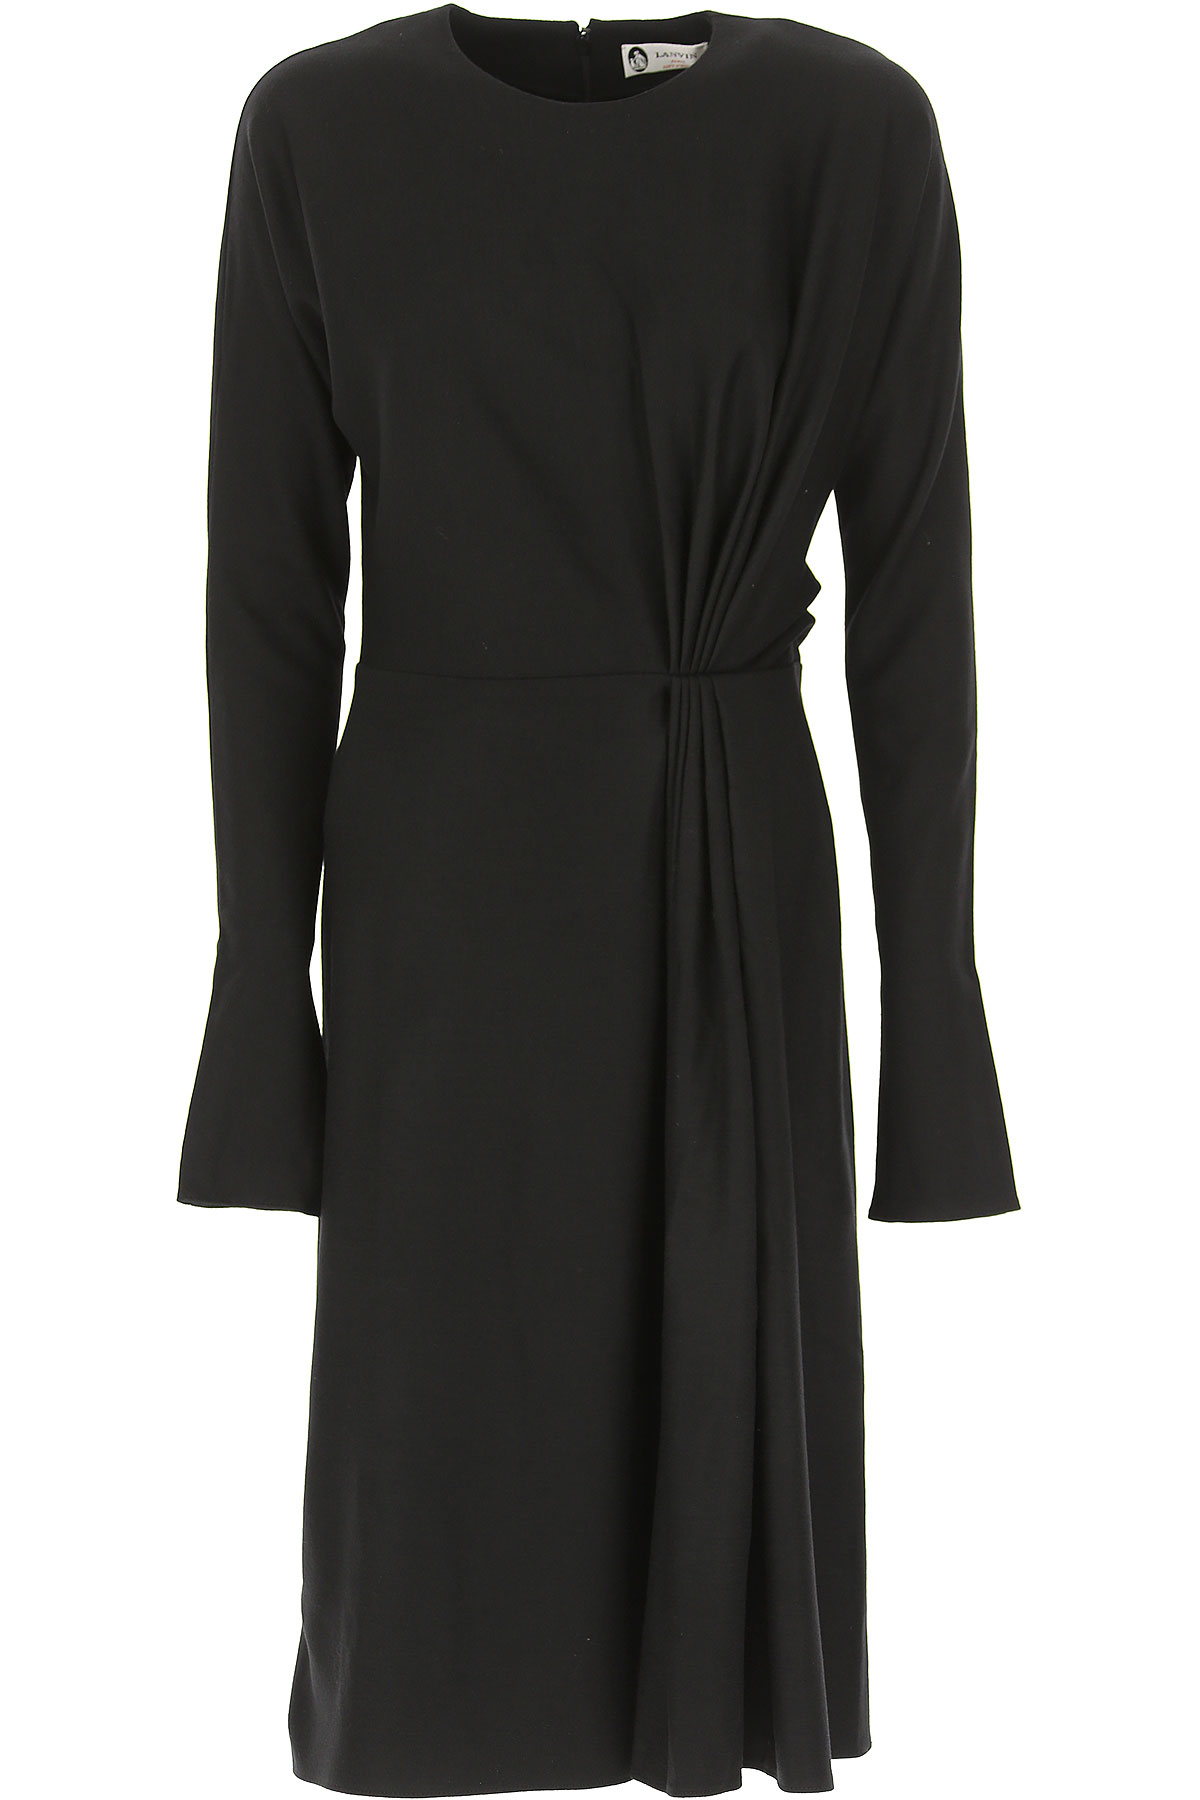 Lanvin Dress for Women, Evening Cocktail Party, Black, Wool, 2017, 2 6 USA-472775